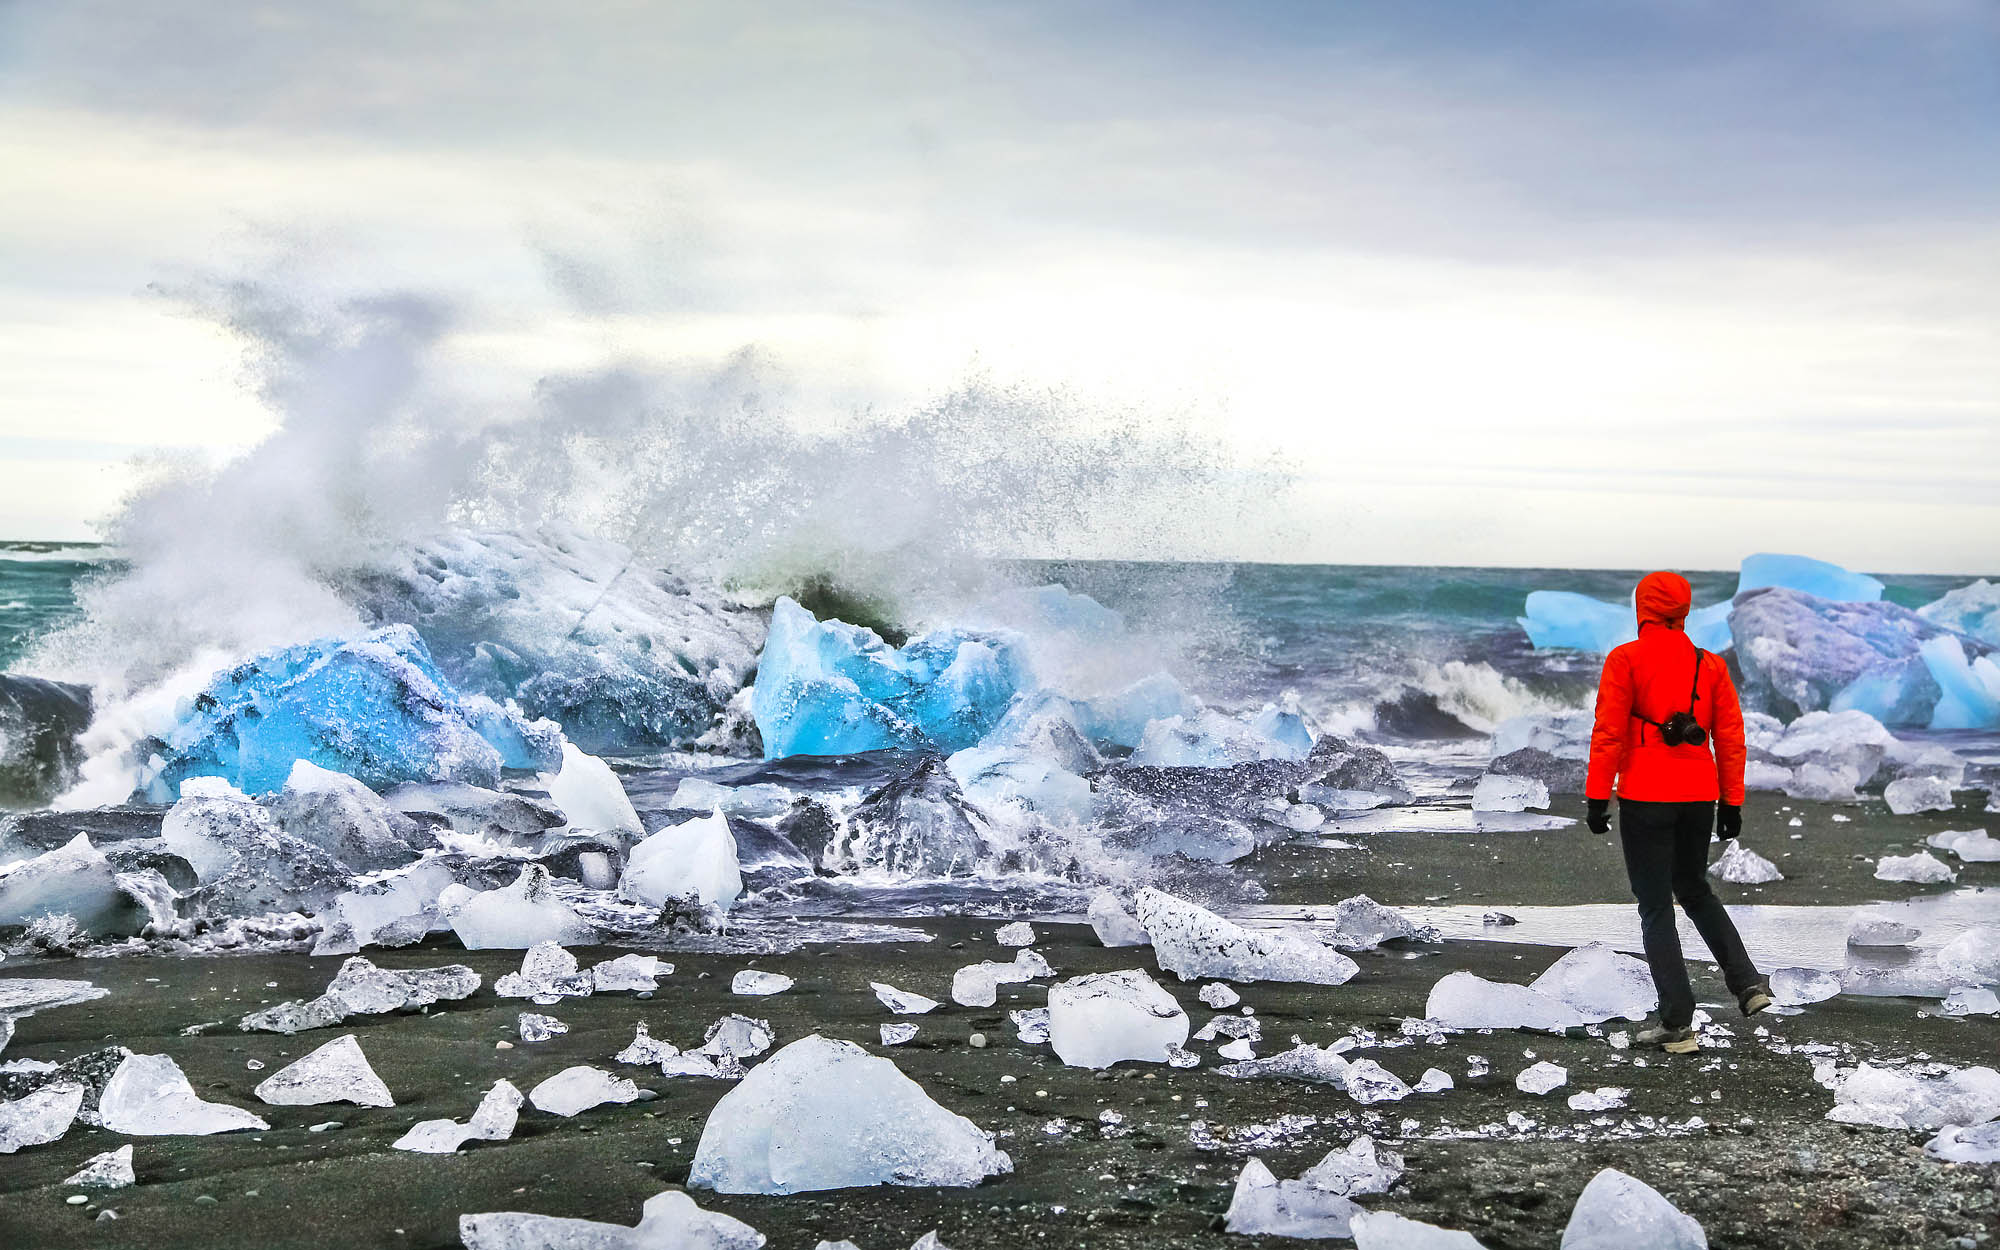 Person in red Jacket looking at Winter Icebergs in Jökulsarlon Glacier Lagoon